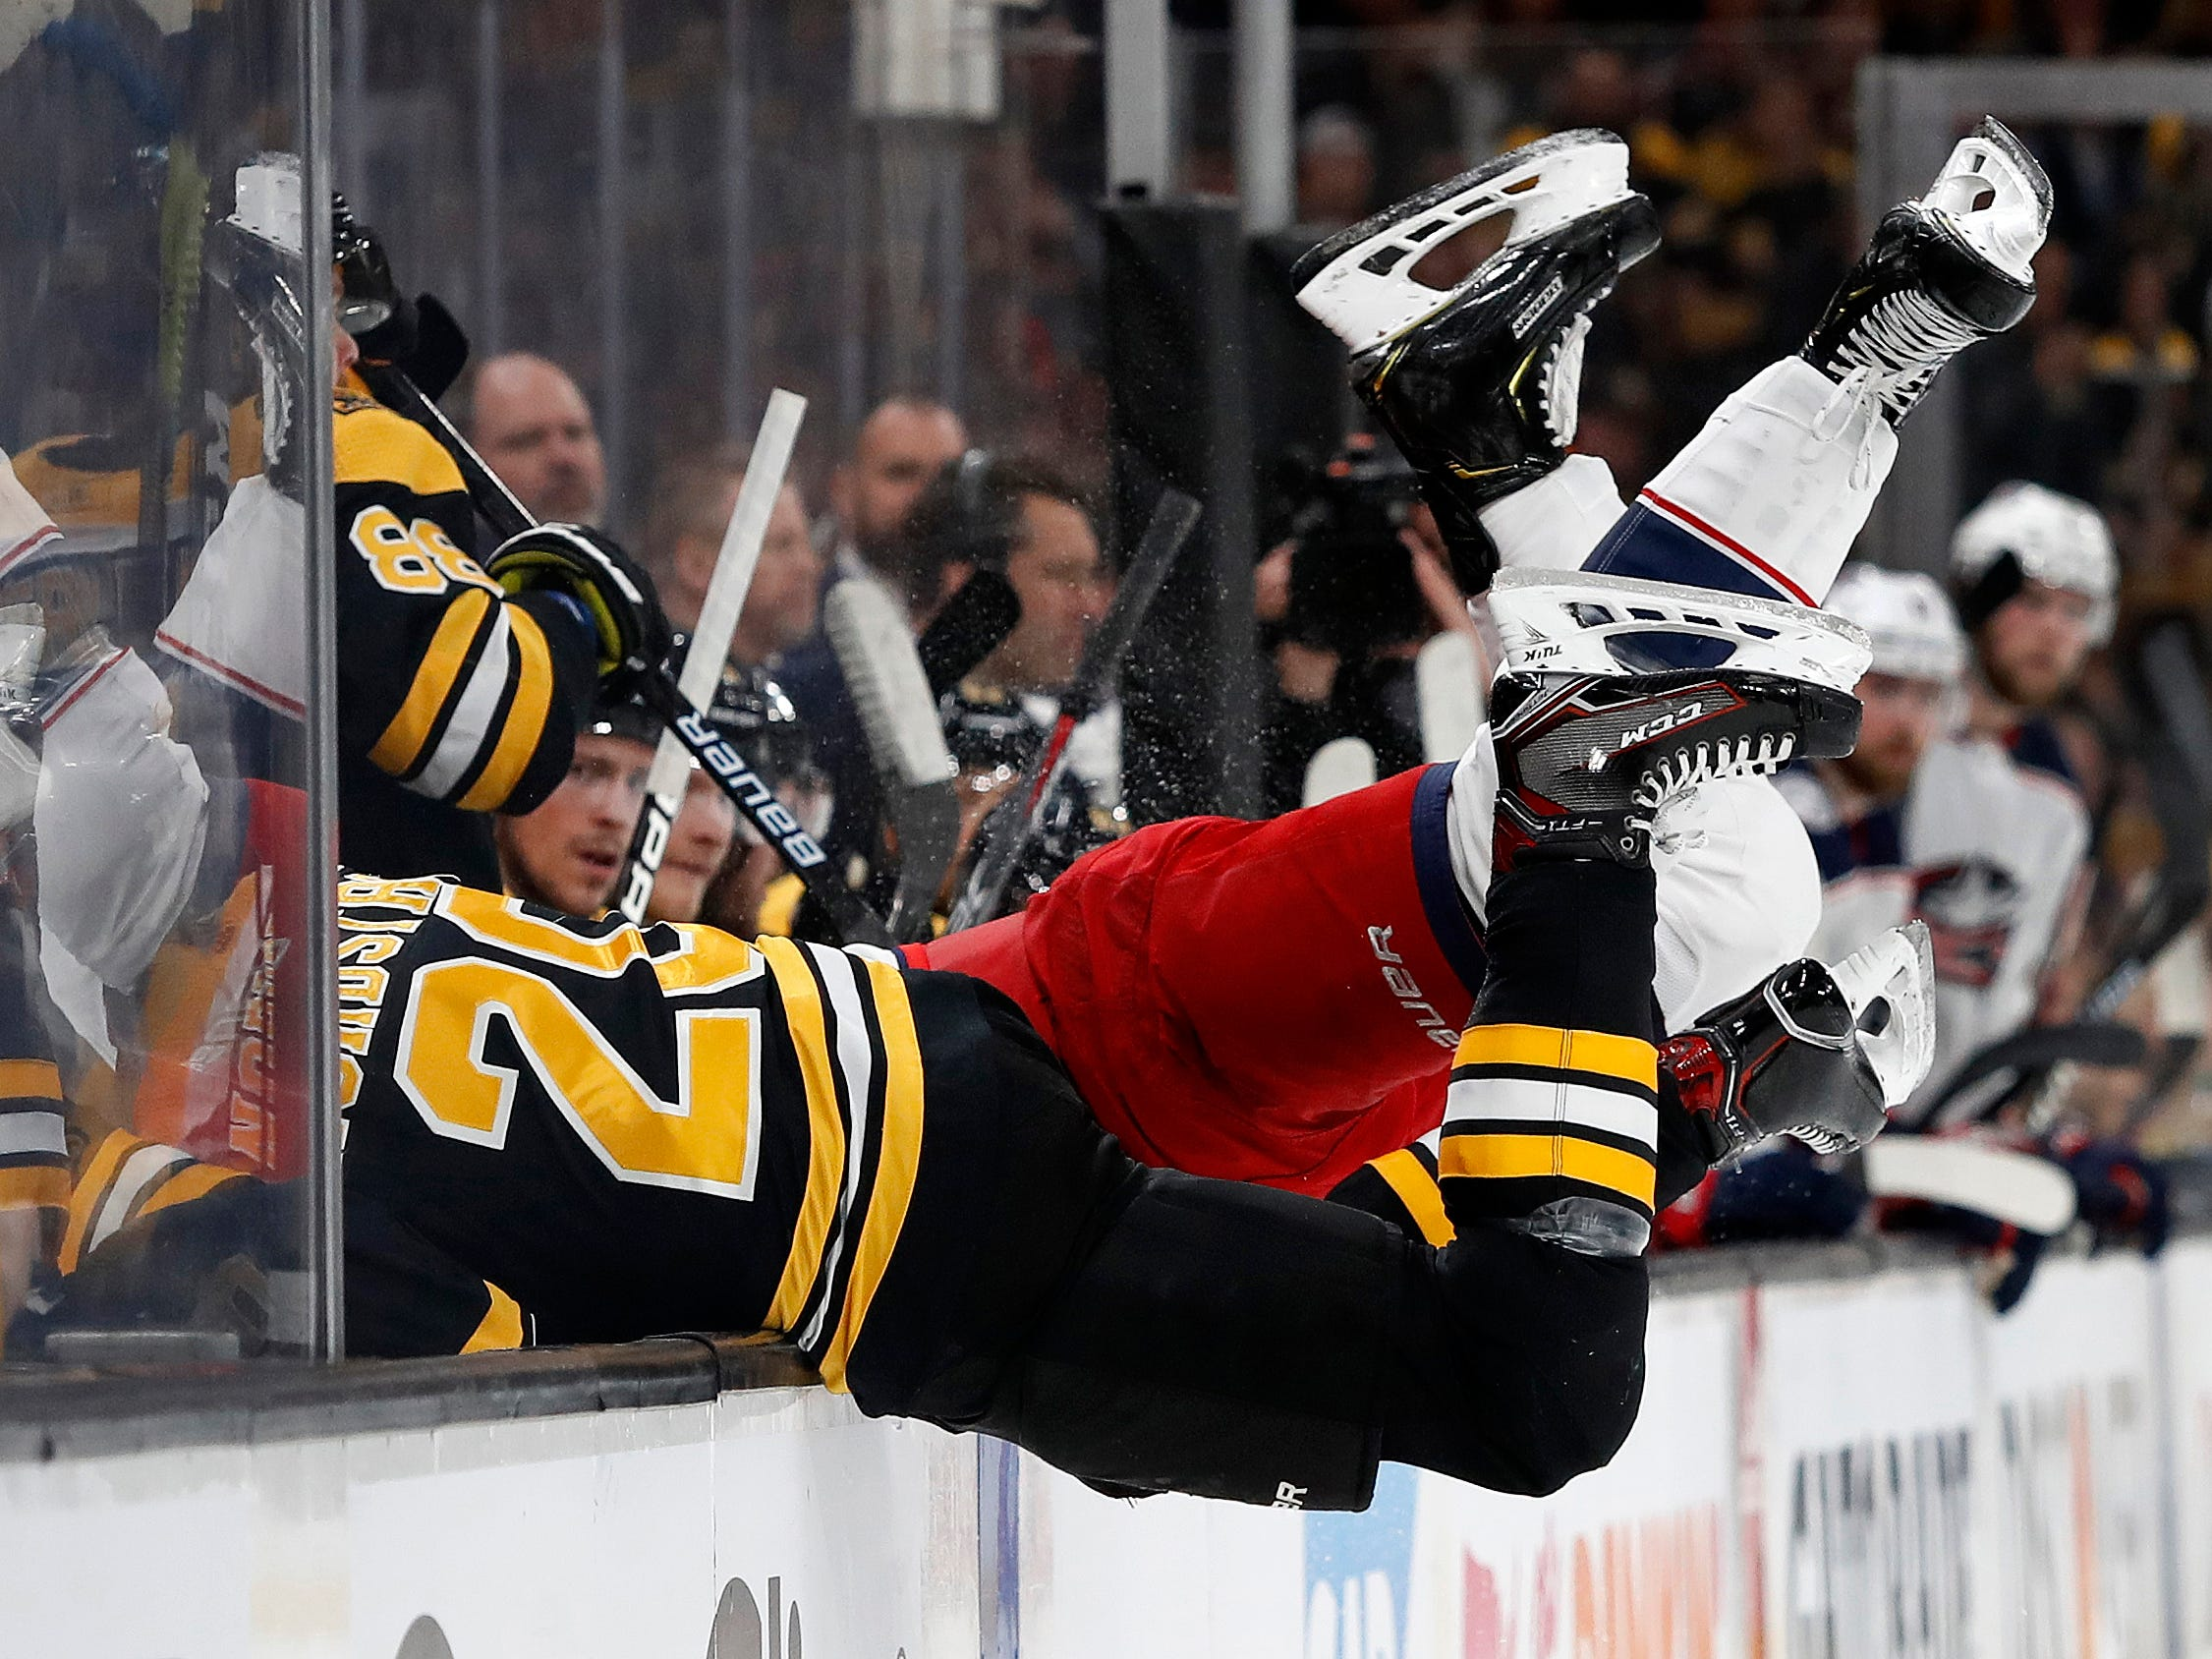 Second round: Bruins center Joakim Nordstrom and Blue Jackets left wing Nick Foligno fall into the bench after colliding during the first period of Game 5.